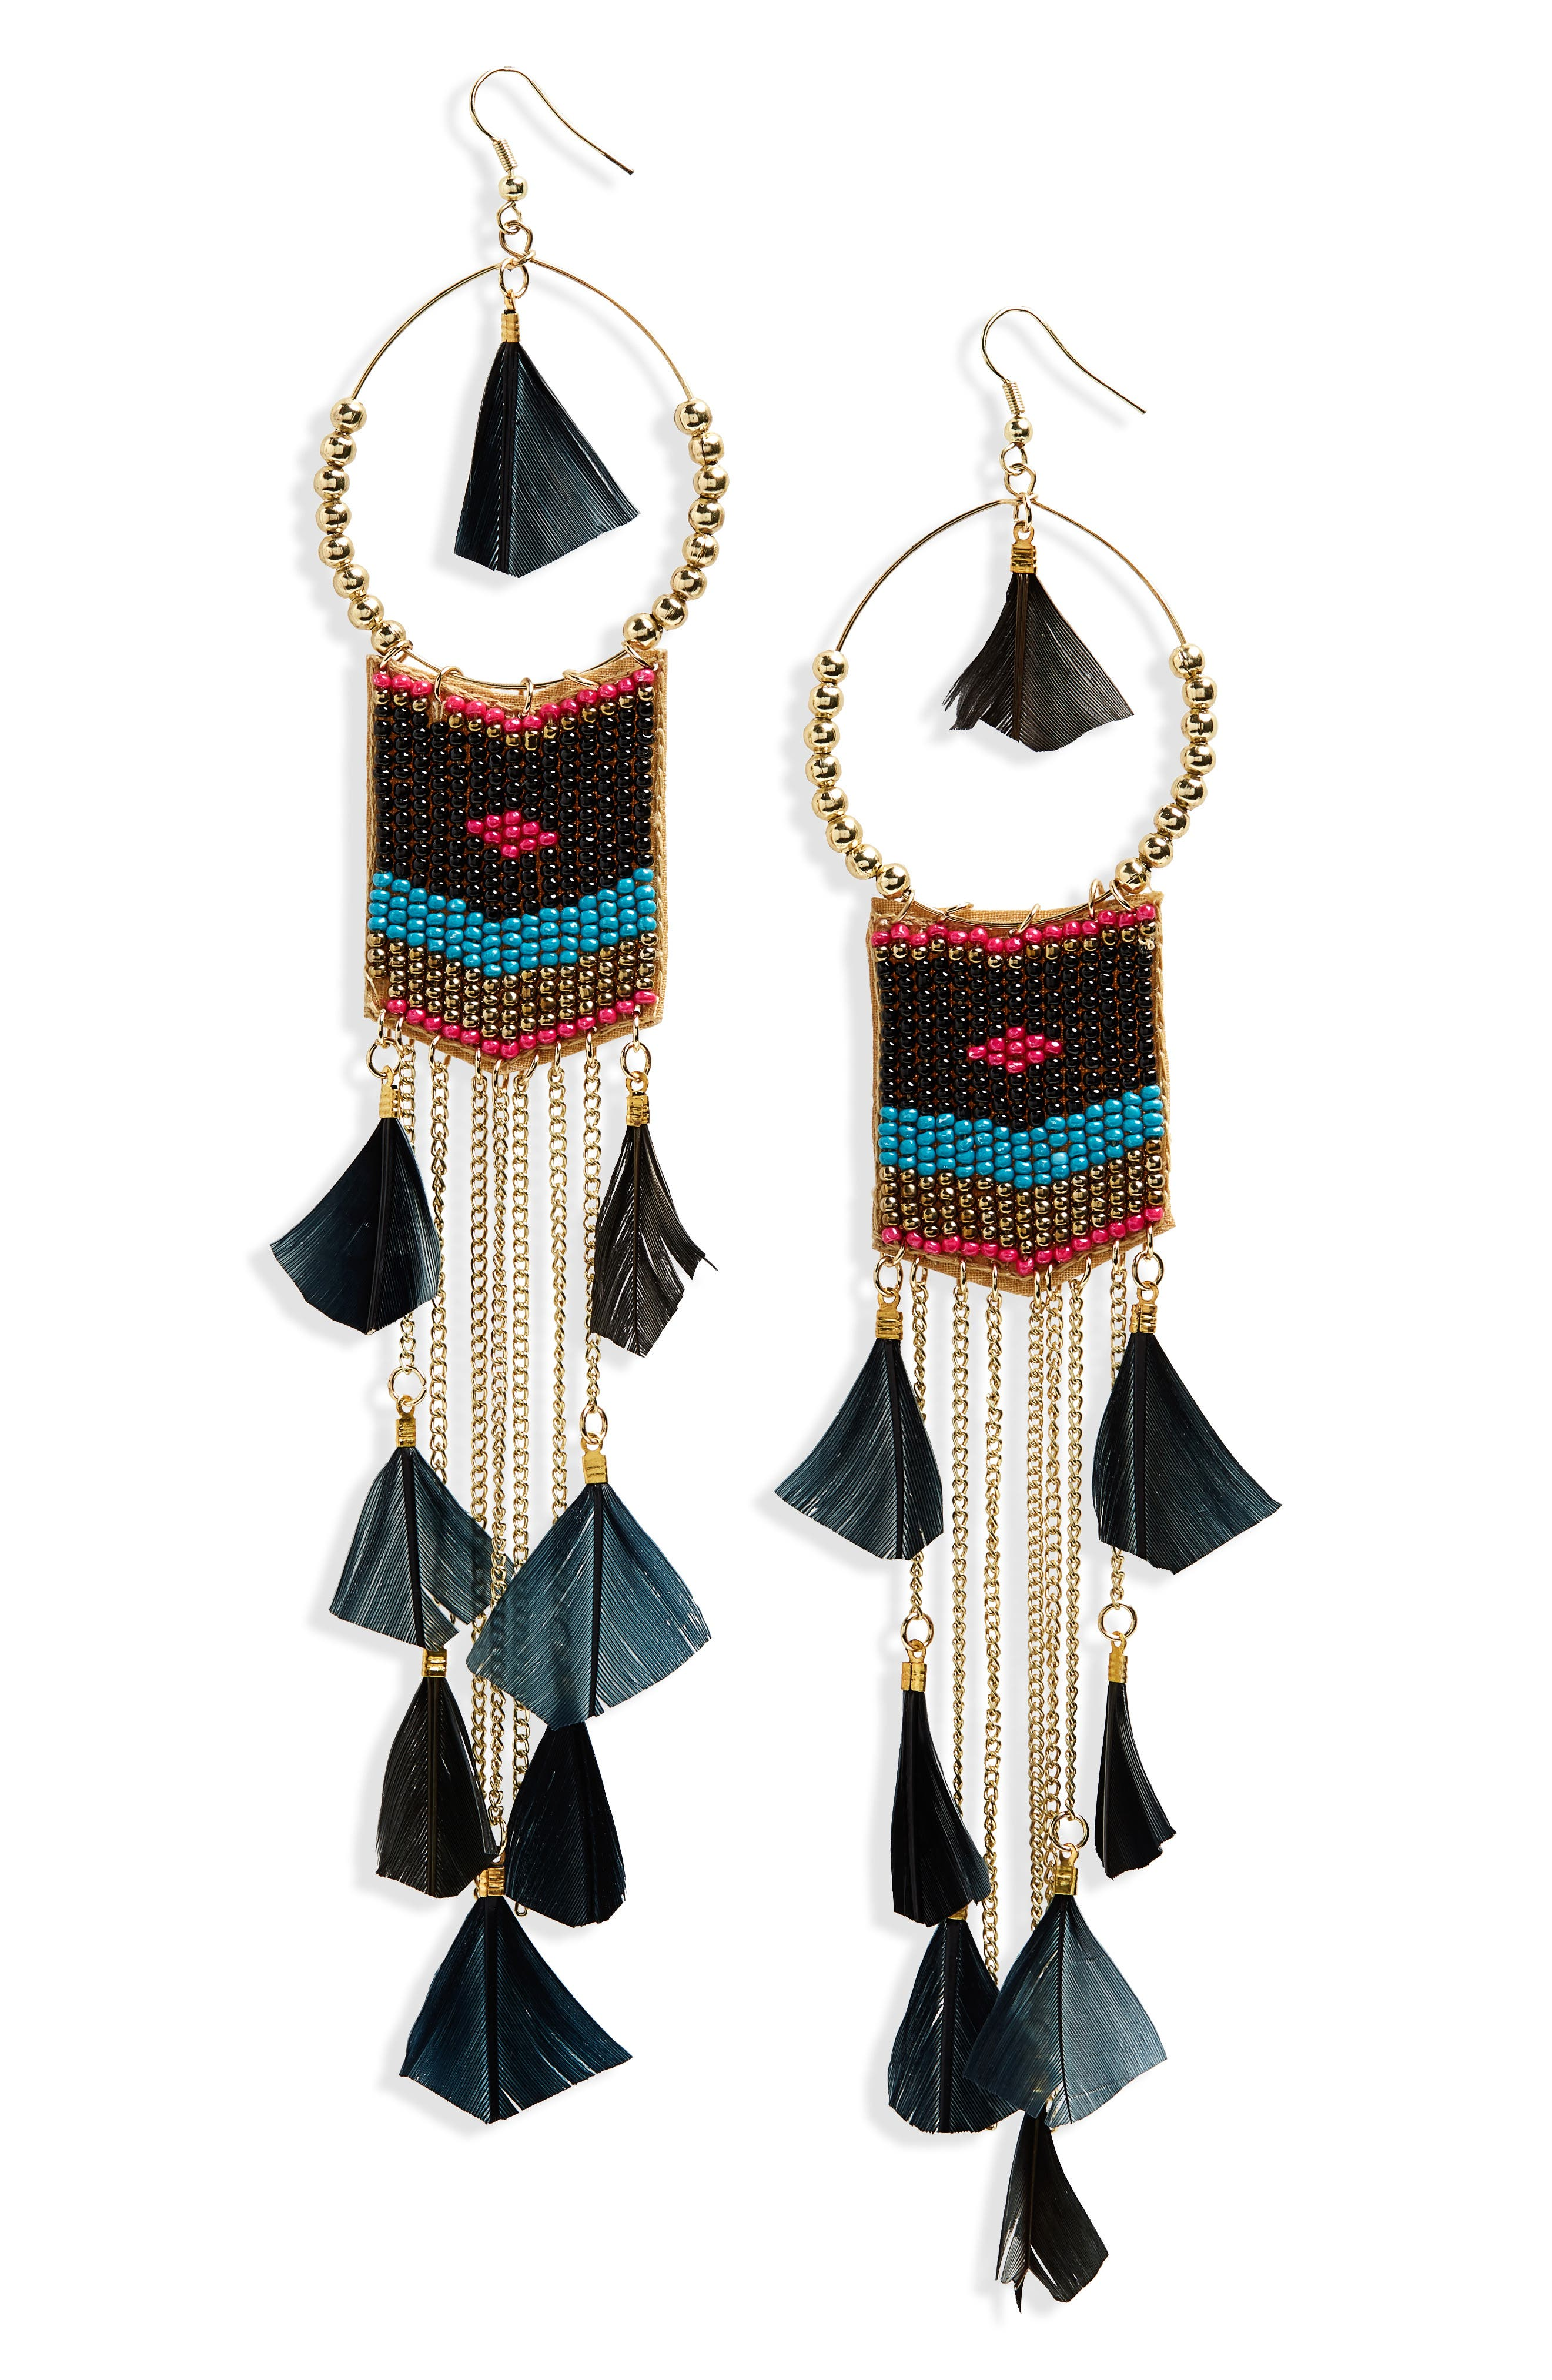 Feather Beaded Drop Earrings,                             Main thumbnail 1, color,                             001